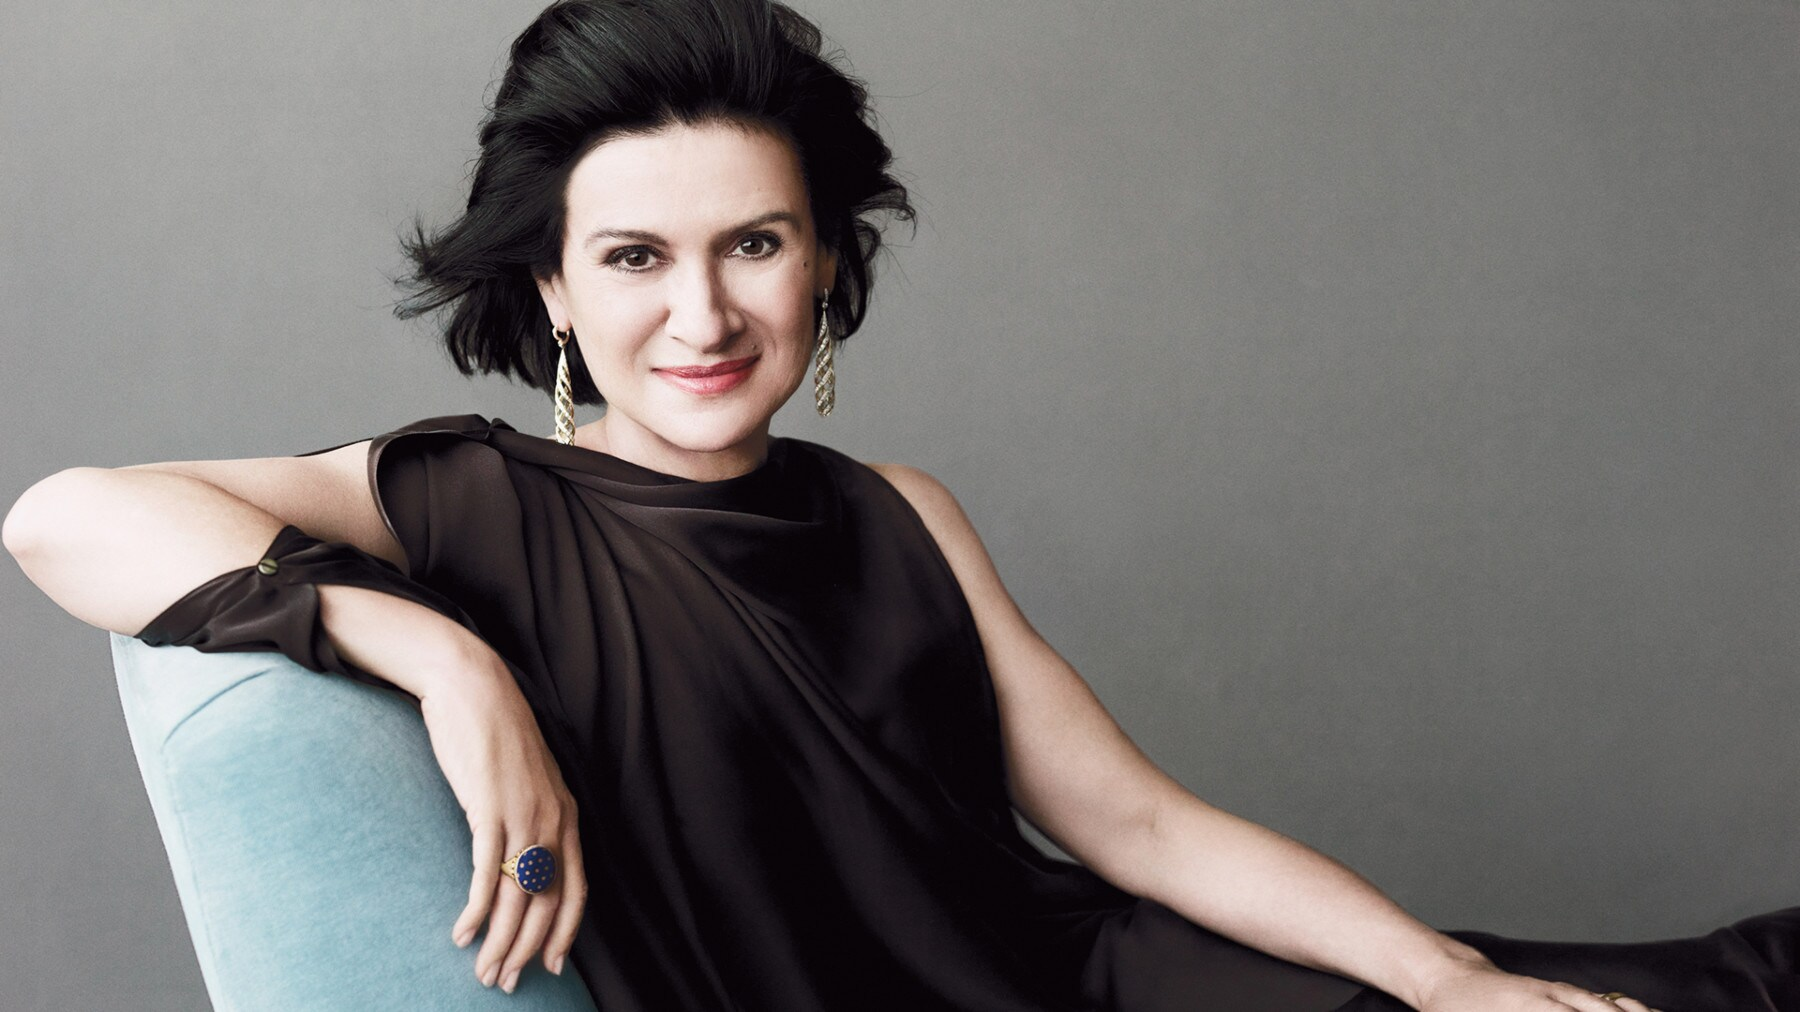 Paloma Picasso Paloma Picasso The Woman Behind The Jewels Vogue Australia